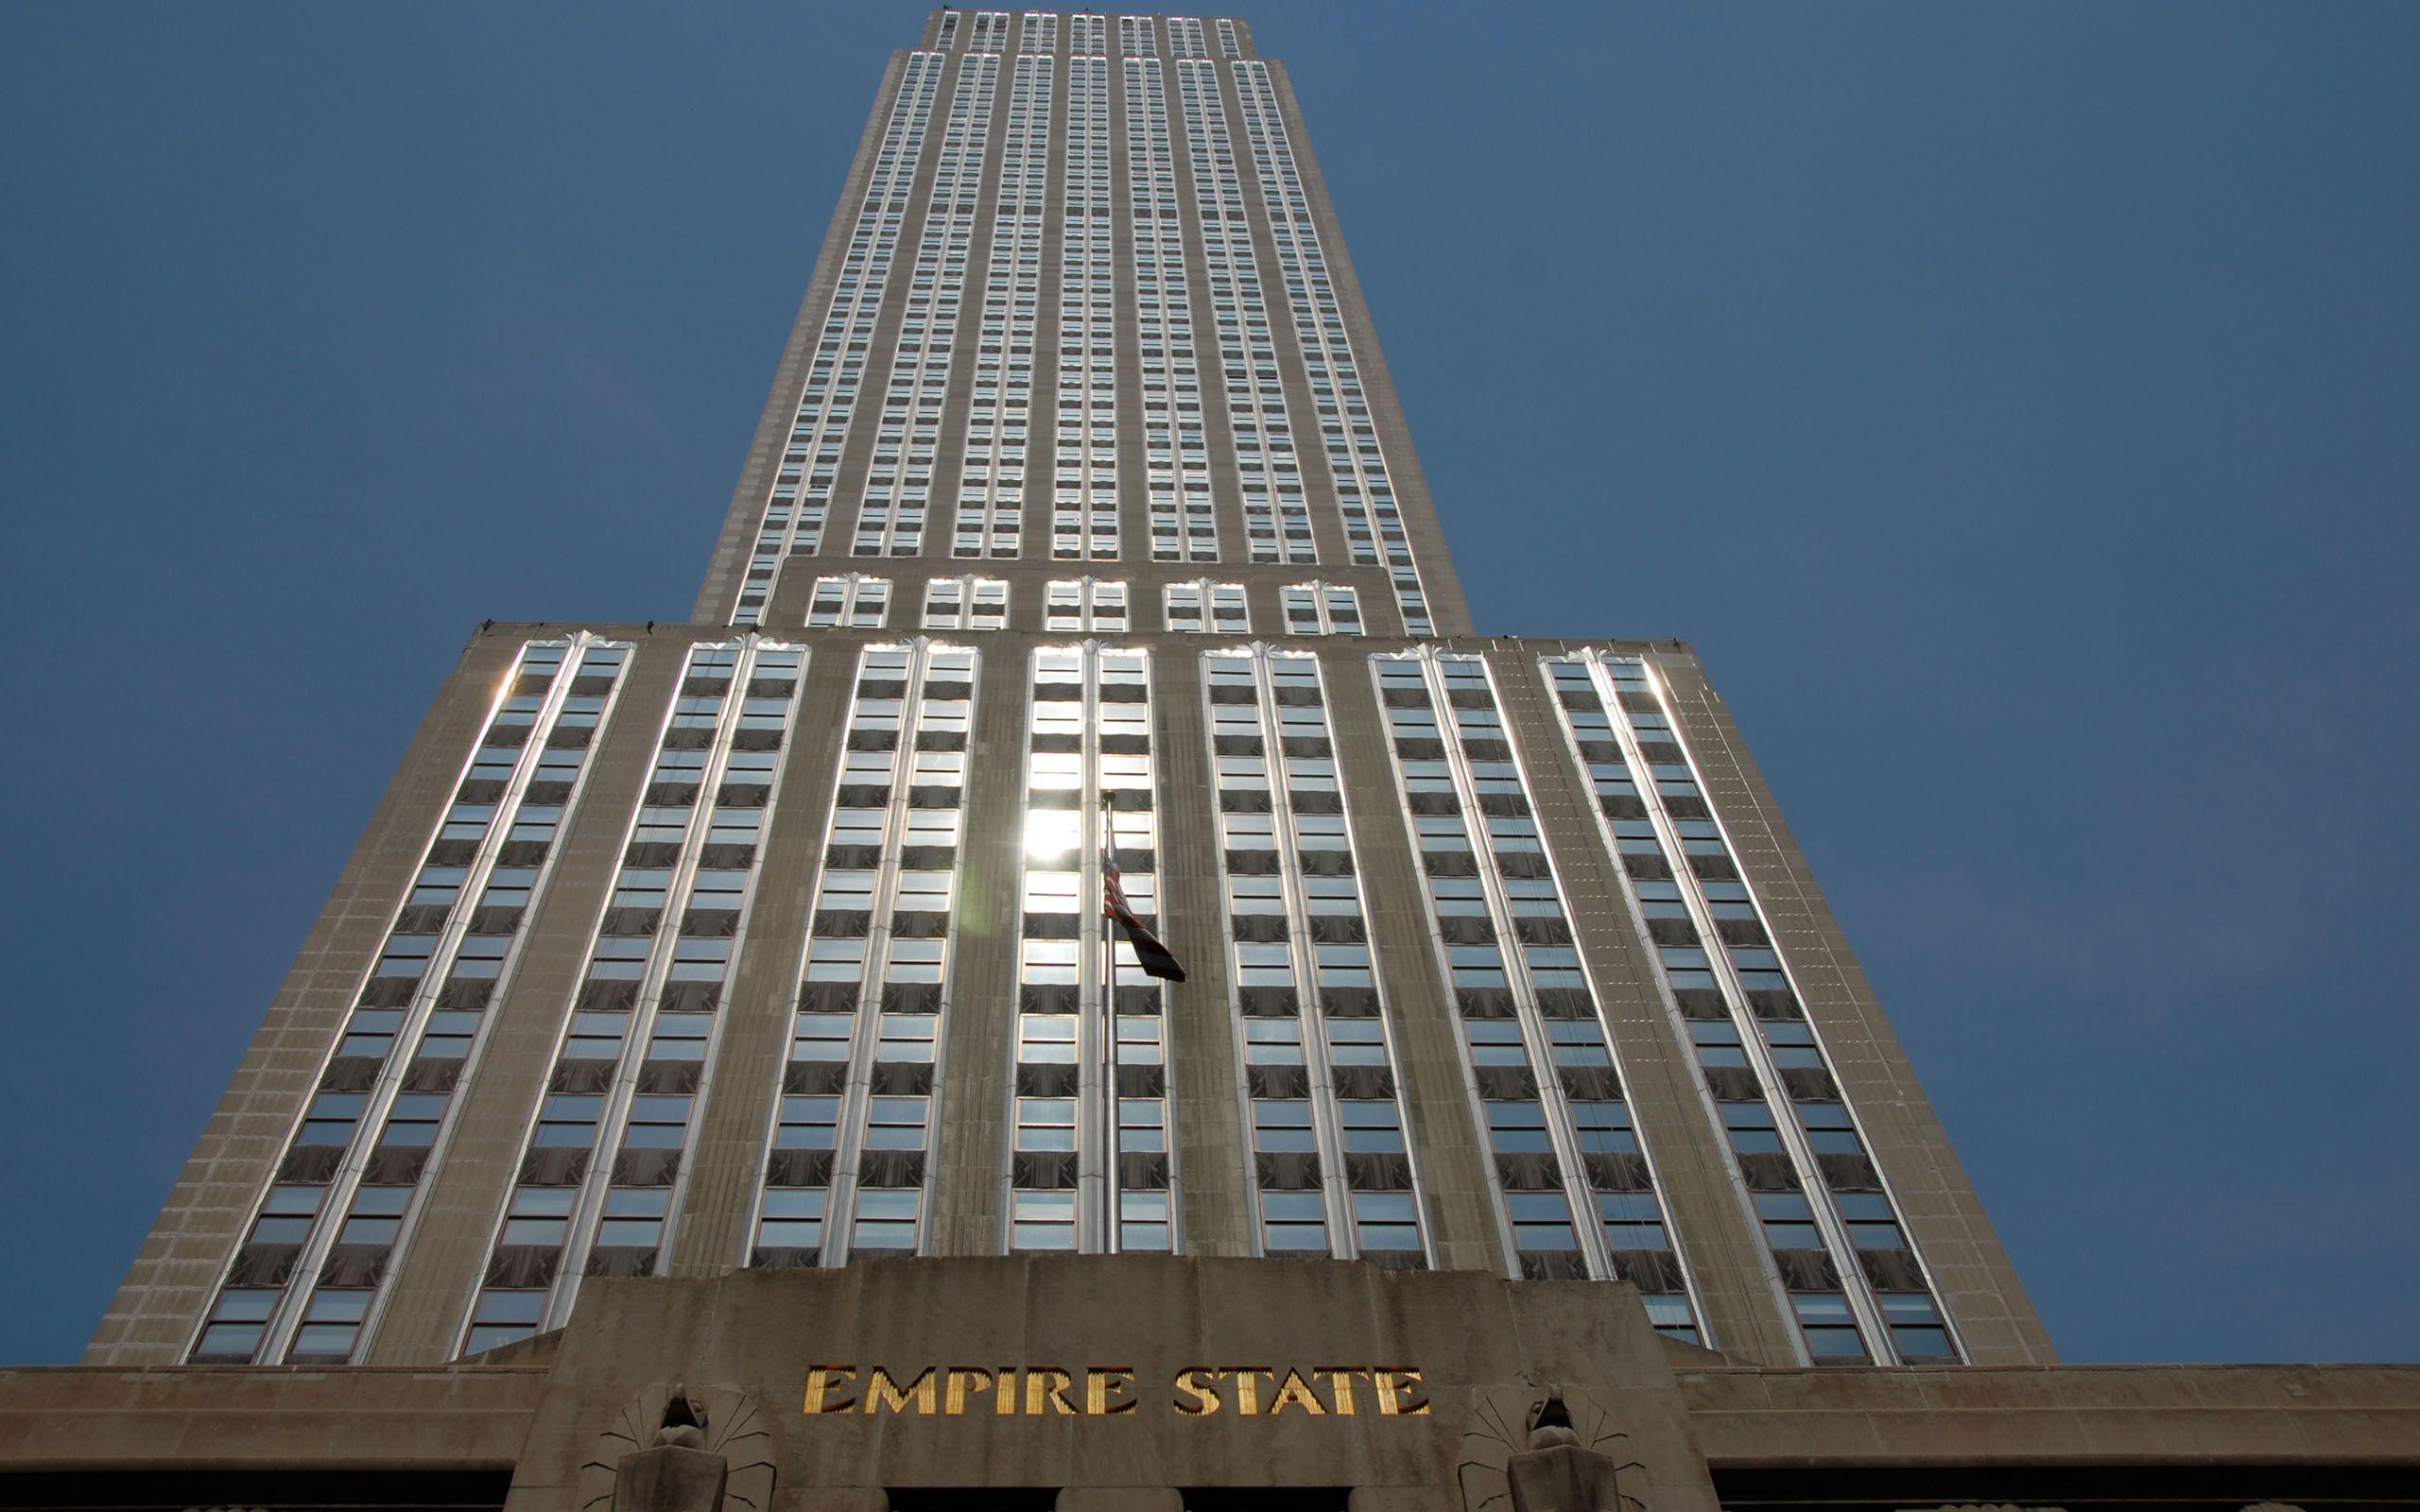 1000+ image about Empire State Building